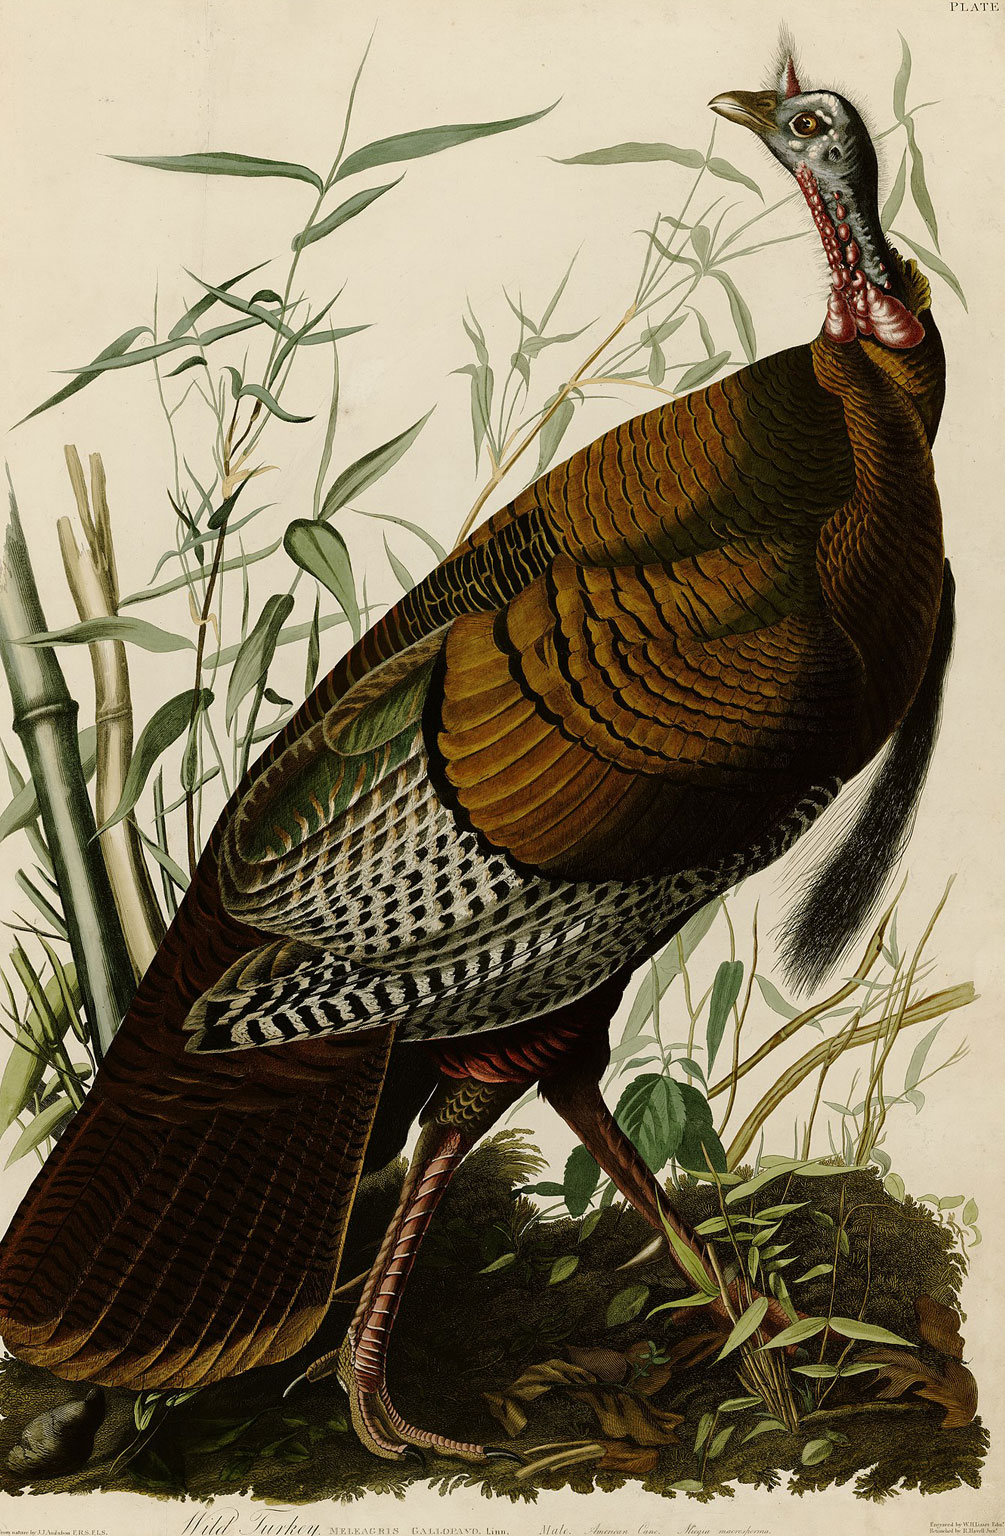 Plate 1 of The Birds of America by Audubon depicting a wild turkey.